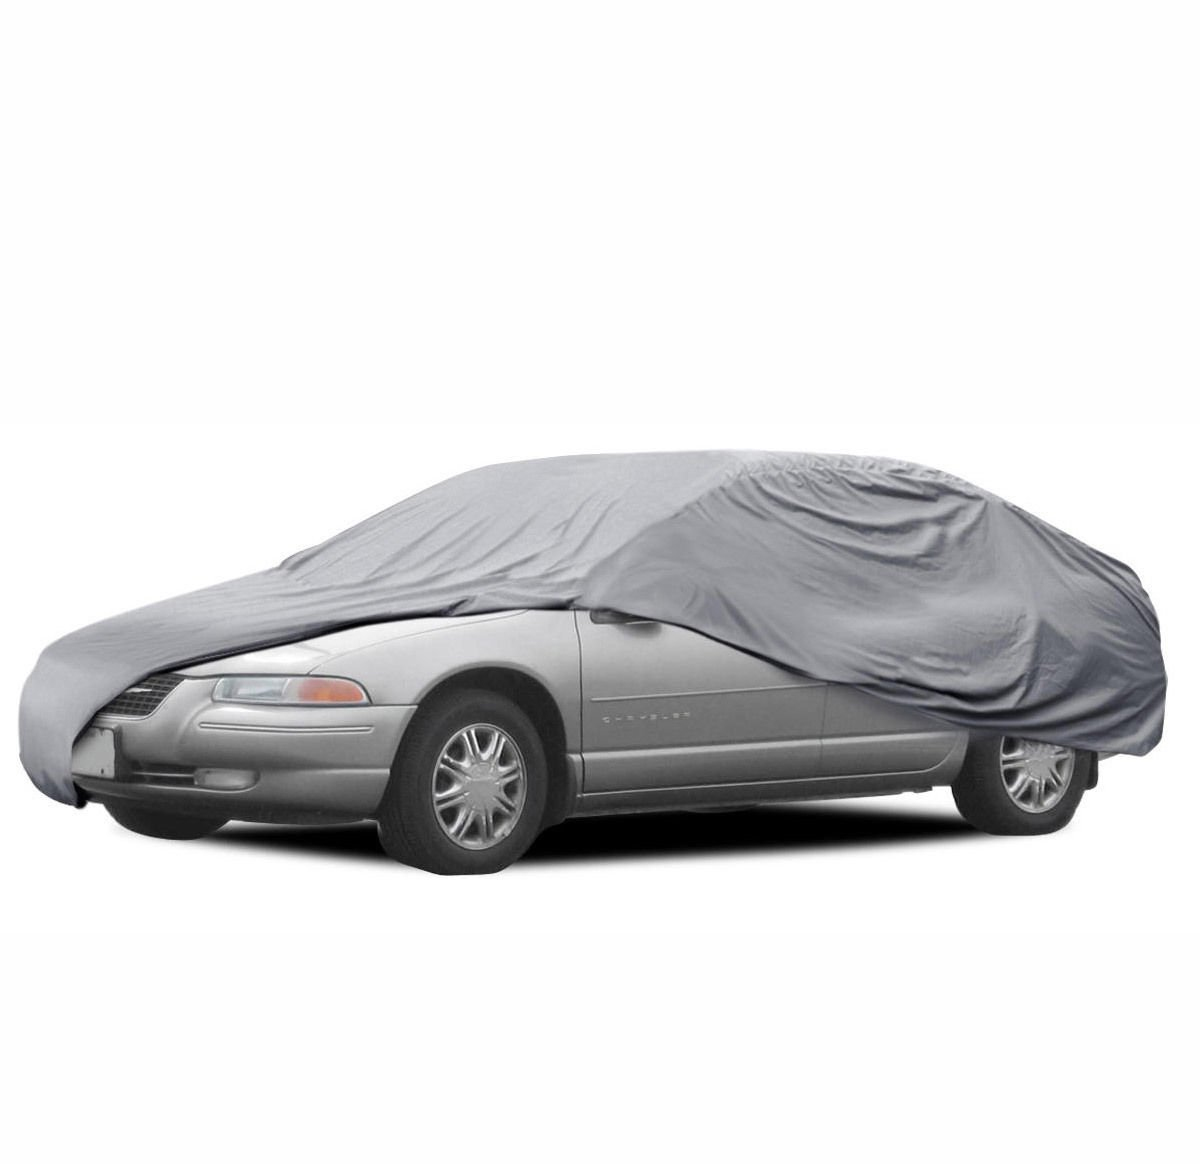 Cadillac Allante Car Cover